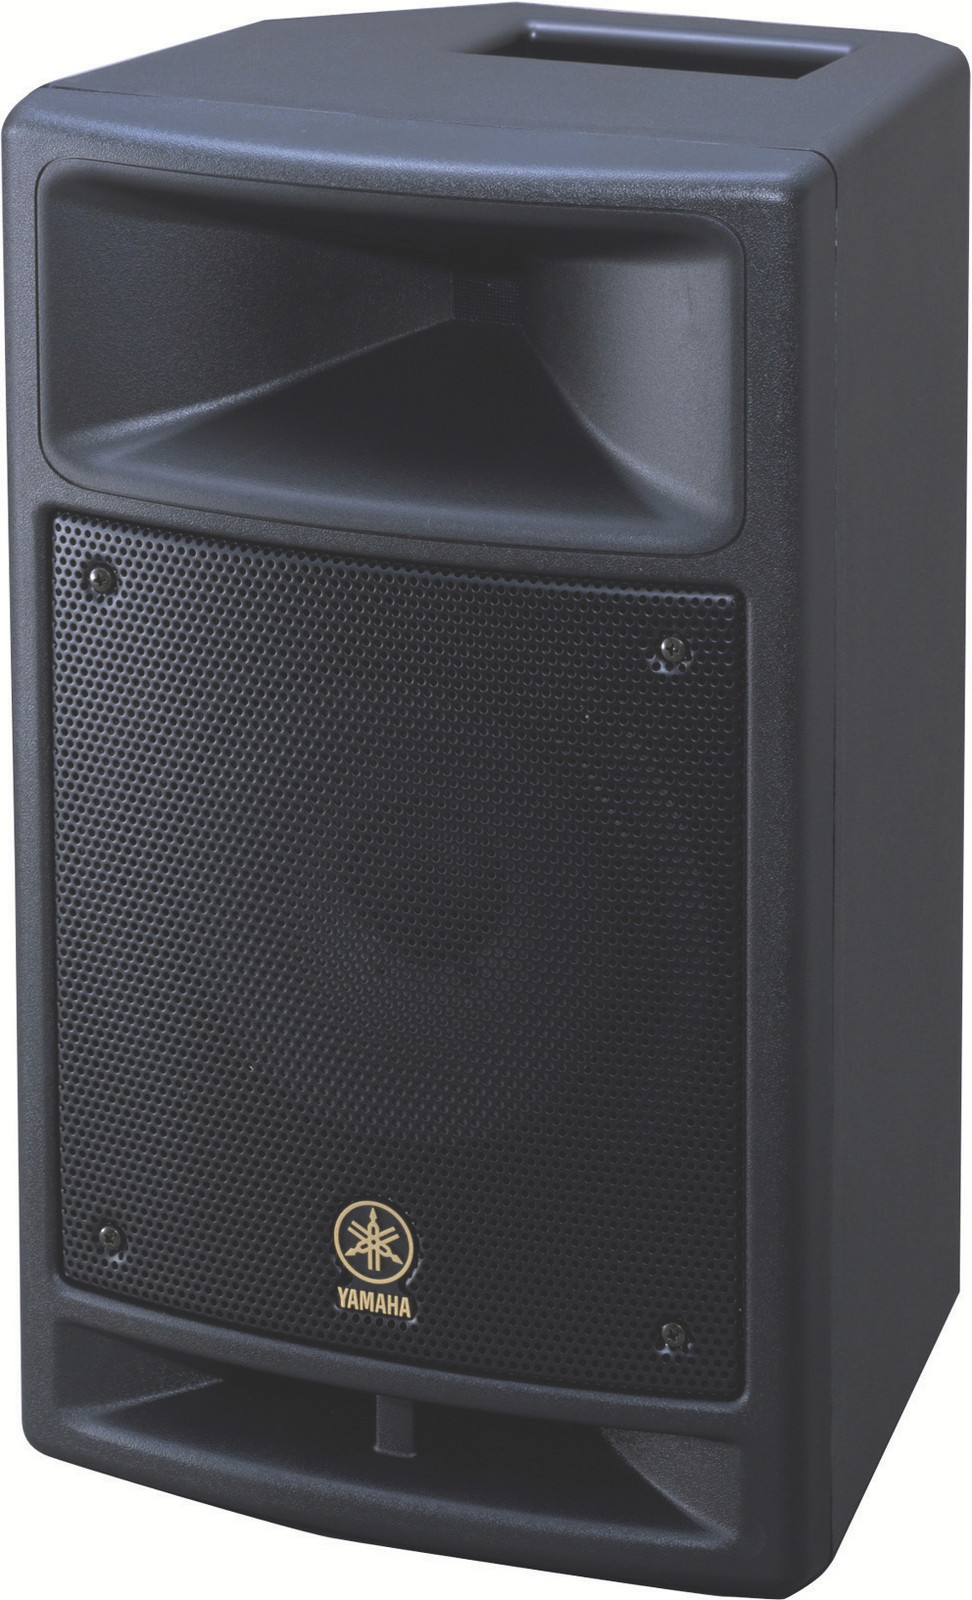 Yamaha msr 100 powered speakers nuansa musik for Yamaha powered monitor speakers